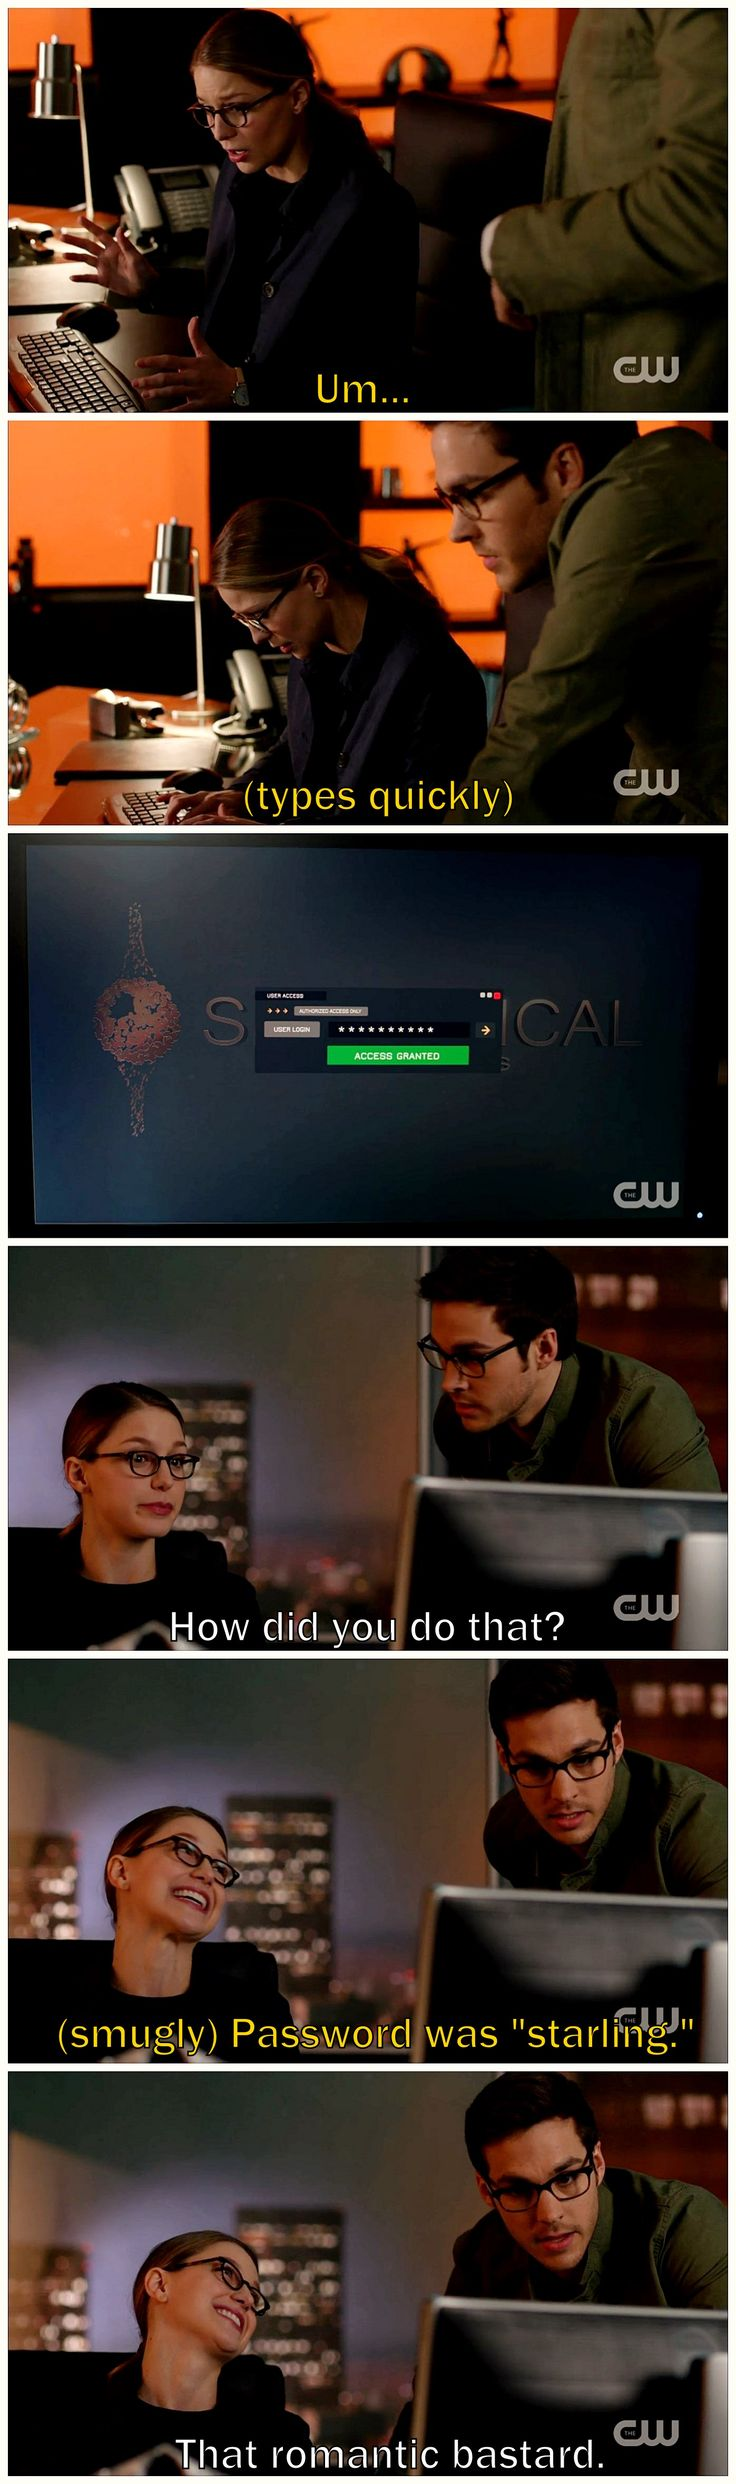 """That romantic bastard."" And my favorite line (arguably, b/c""mannection"") of Supergirl 2x18 belongs to Mon-El. Lol, I love this cute & wacky duo working together. This kind of comedy is what S1 was missing & it makes me so happy. This scene reminds me of Veronica Mars, Nancy Drew, Scooby Doo, etc. Kara and Mon are adorably awesome.